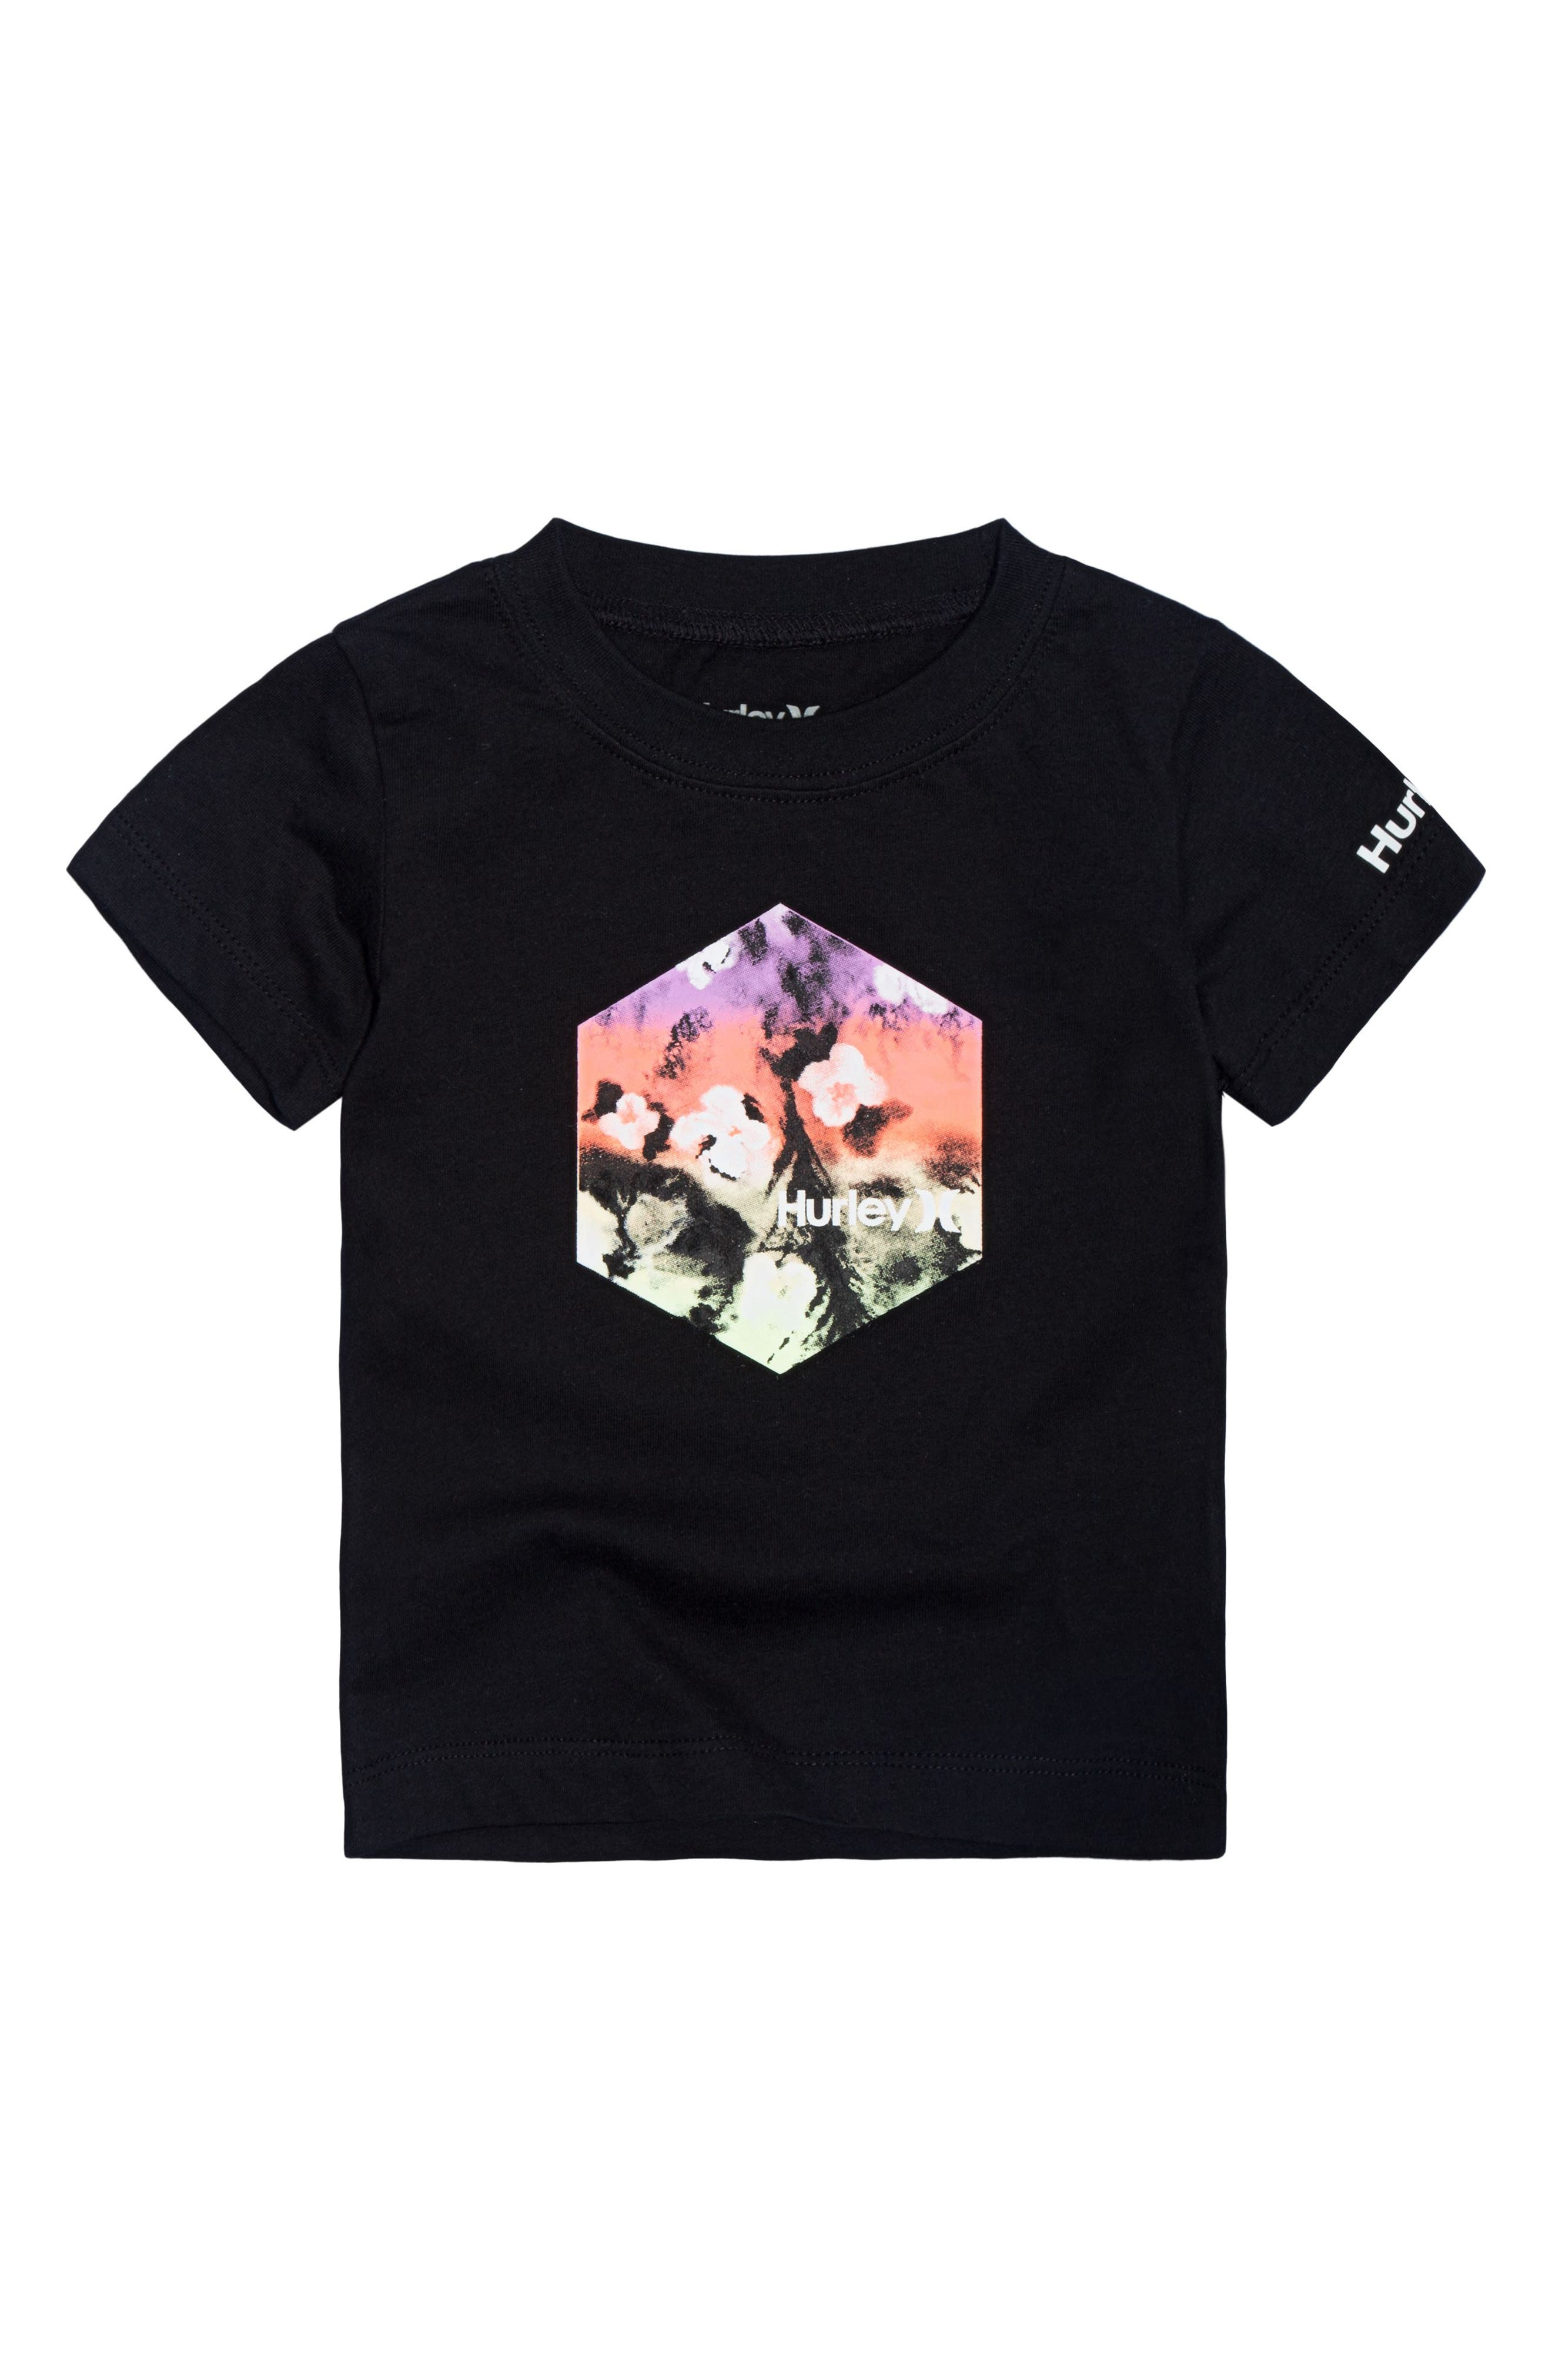 Watercolor Premium Graphic T-Shirt,                             Main thumbnail 1, color,                             001